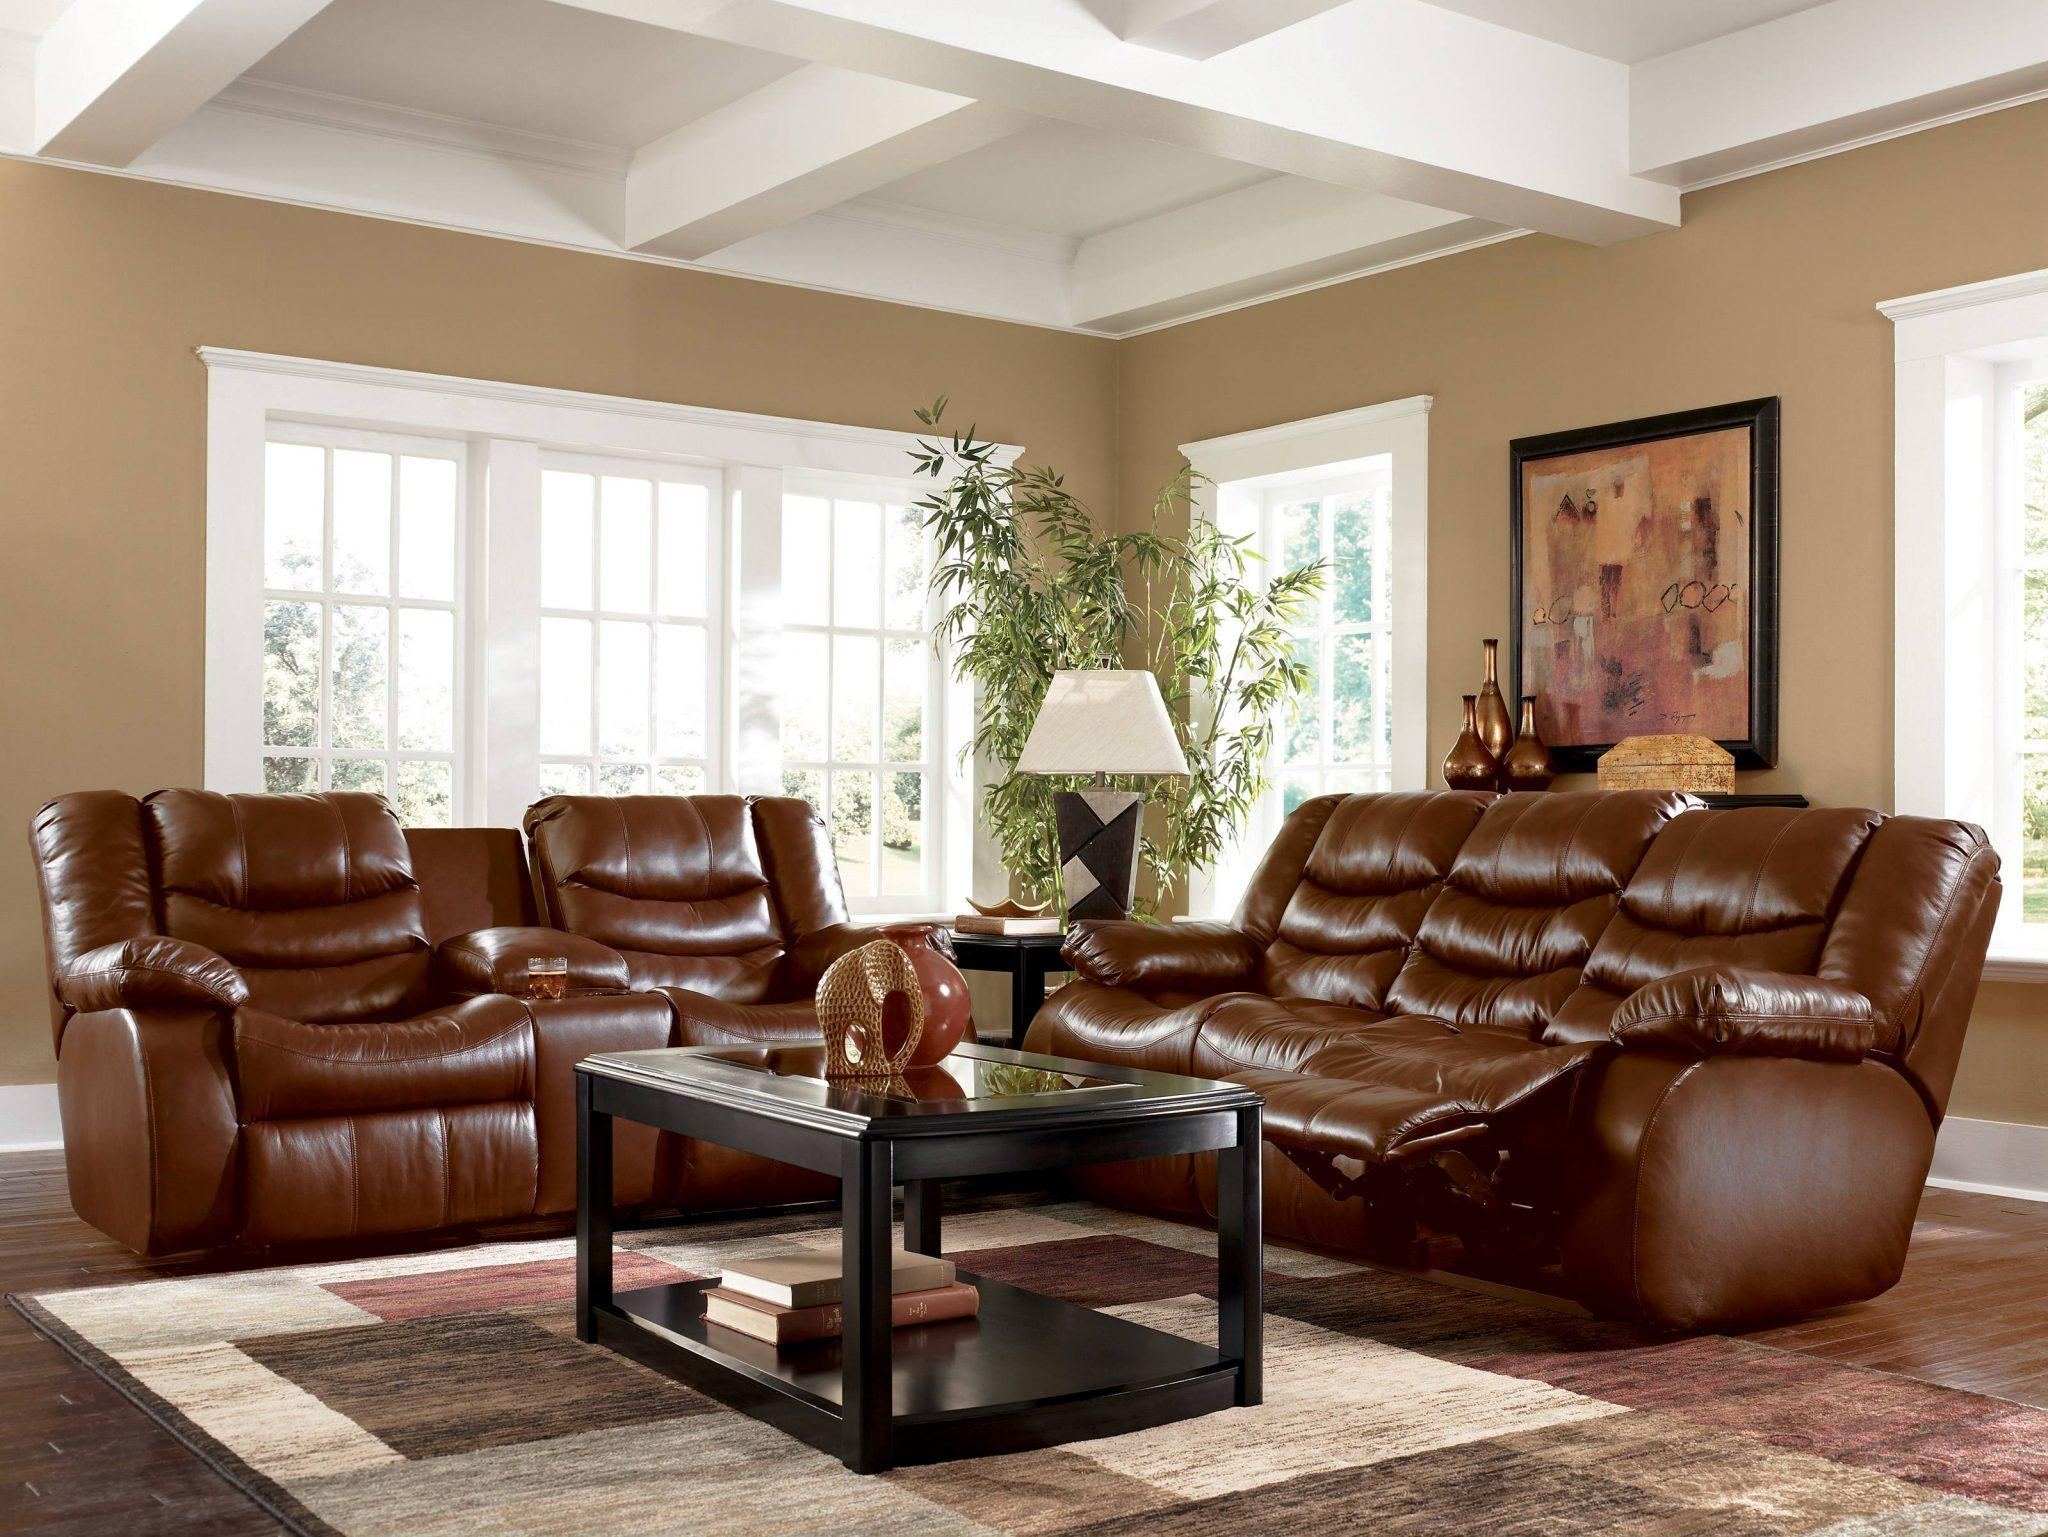 Living Room Ideas With Brown Sofas – Theydesign – Theydesign Intended For Living Room With Brown Sofas (View 10 of 20)